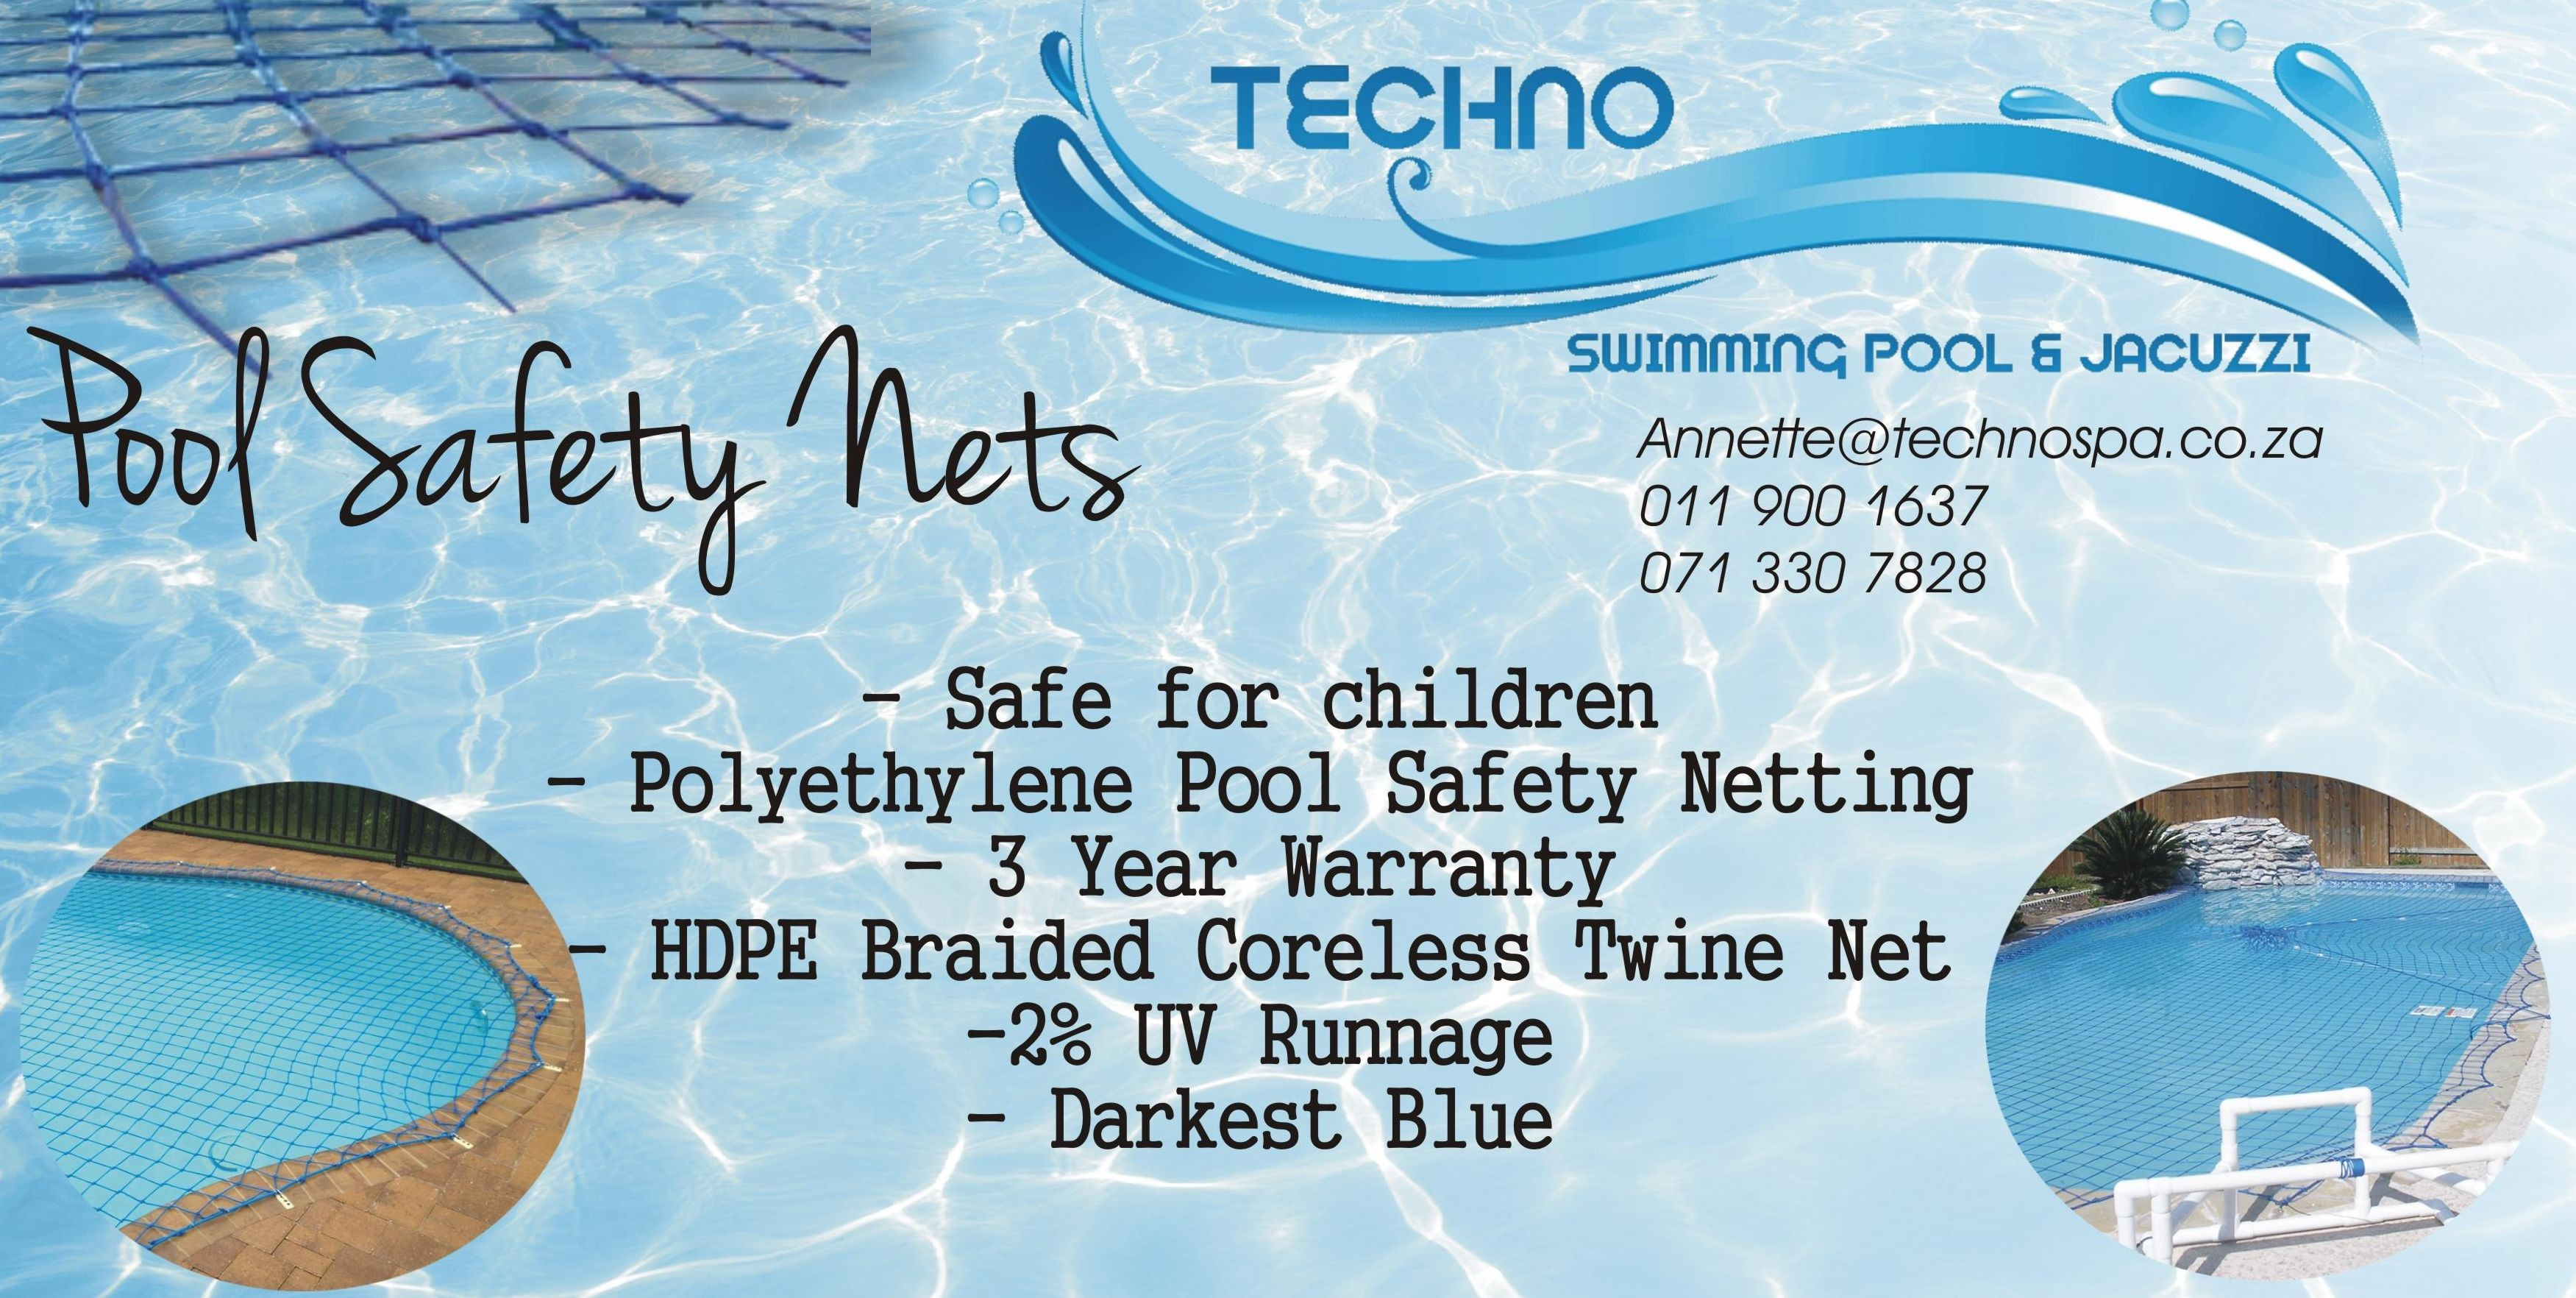 pool nets by Techno, now available. Pool safety